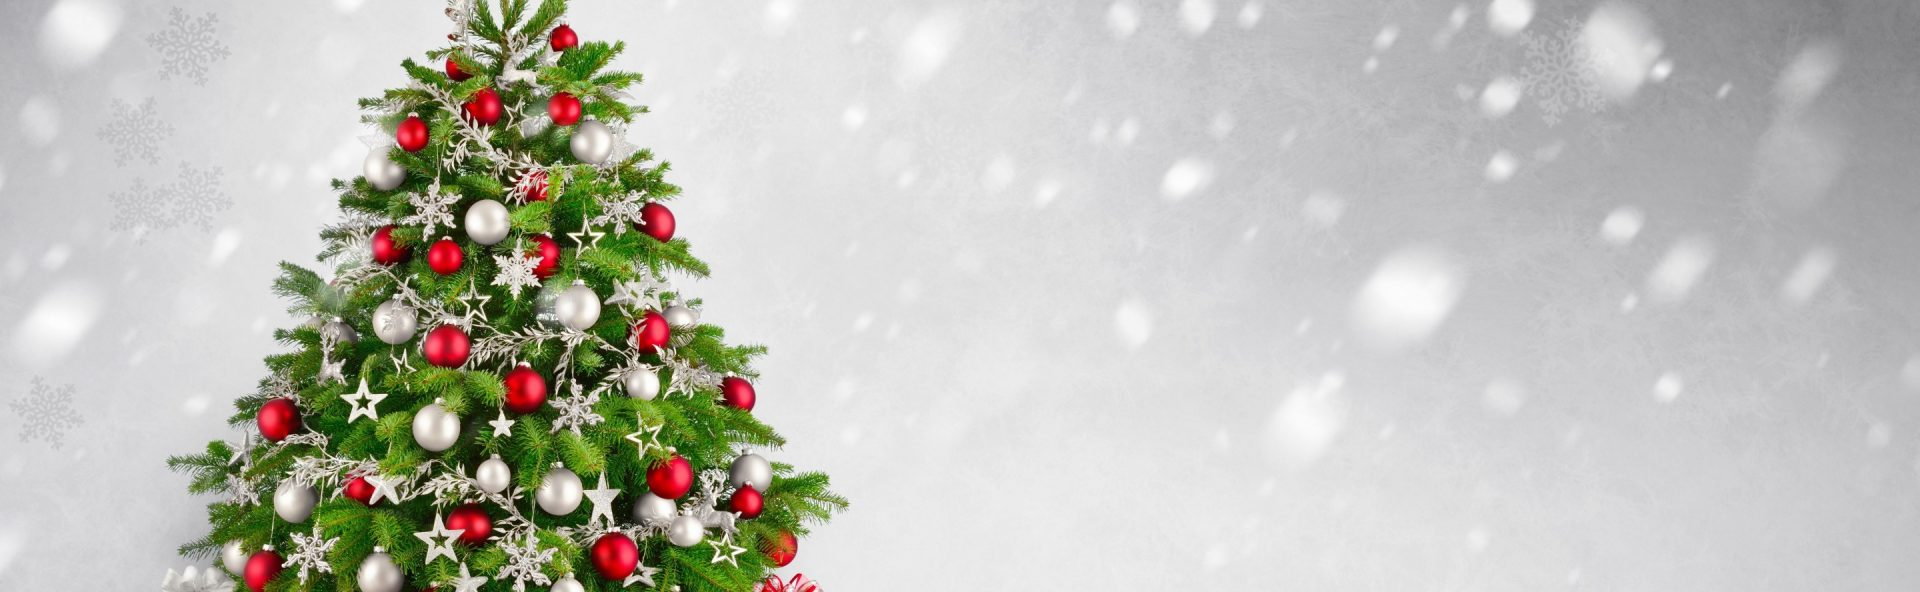 christmas-tree-2880x1800-decoration-presents-gifts-snowfall-5k-3963 (2)